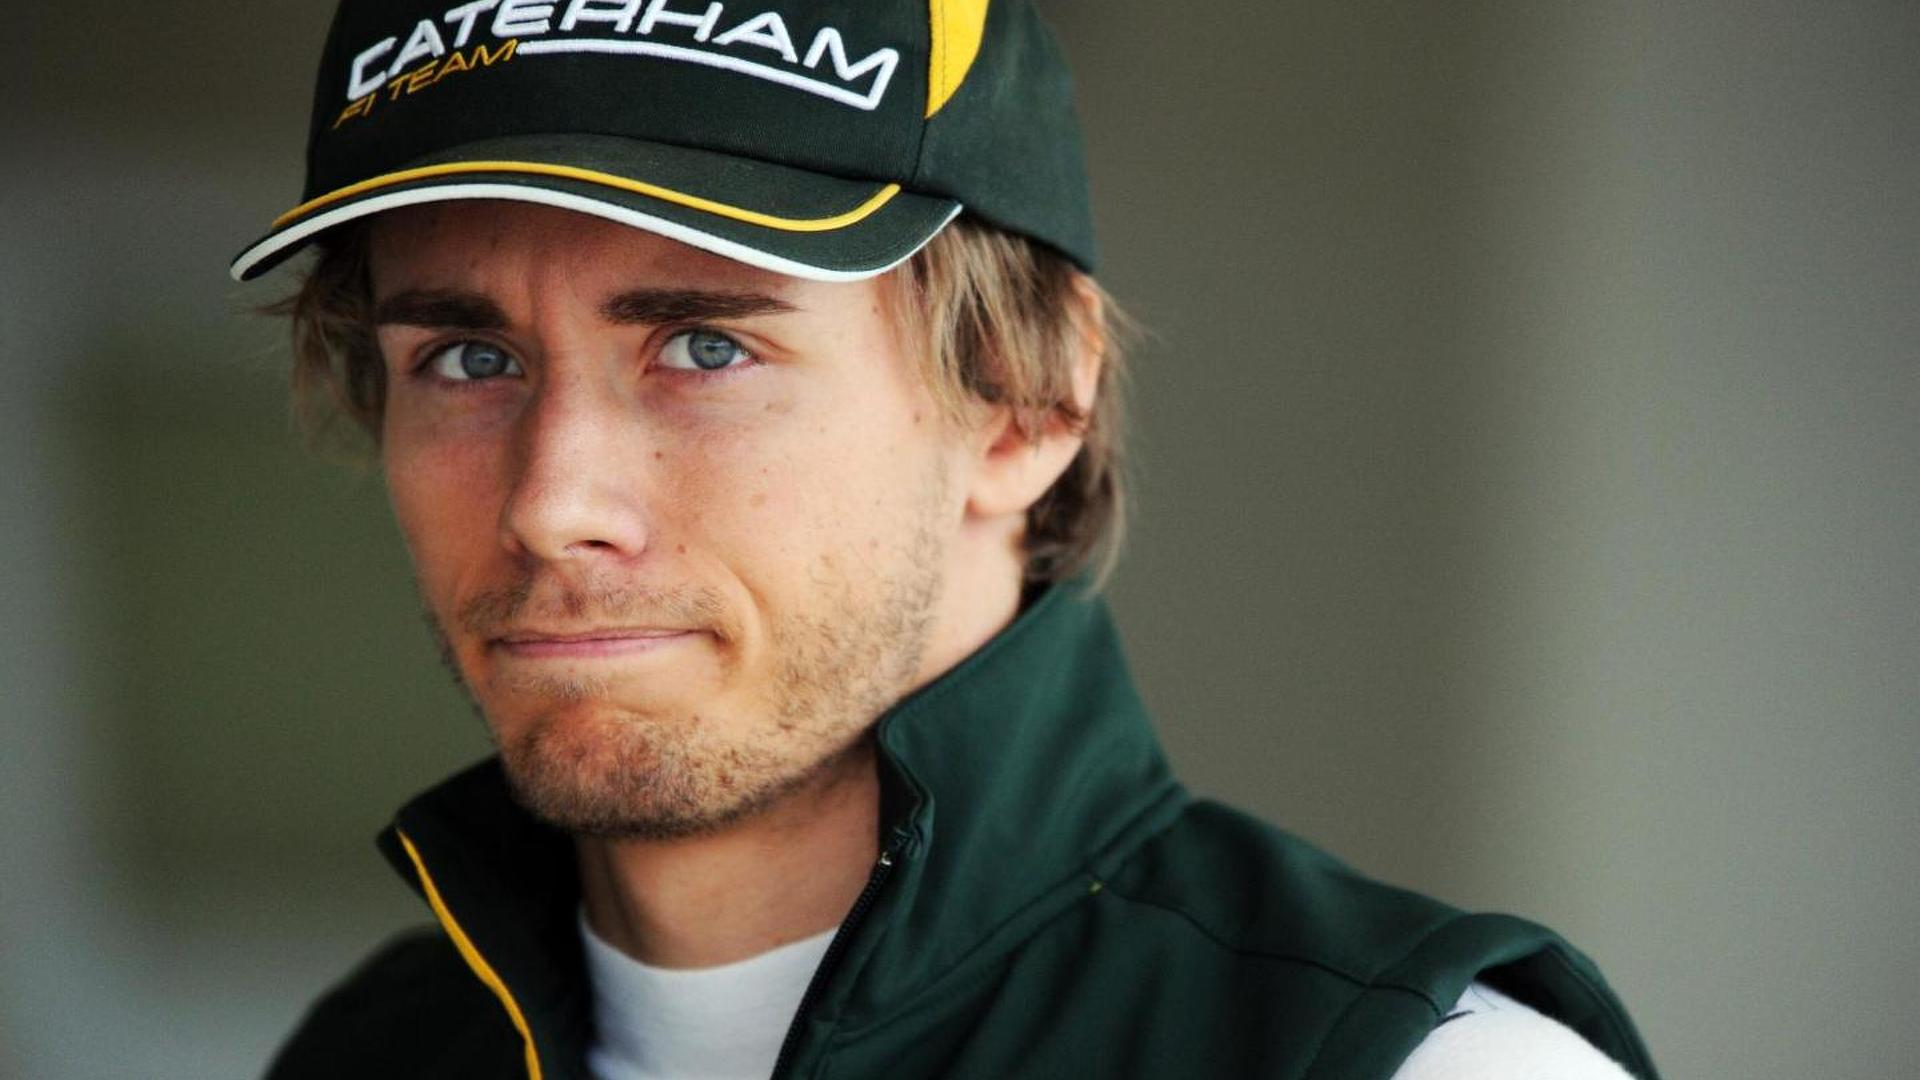 Pic working with Craig Pollock, loses Caterham seat